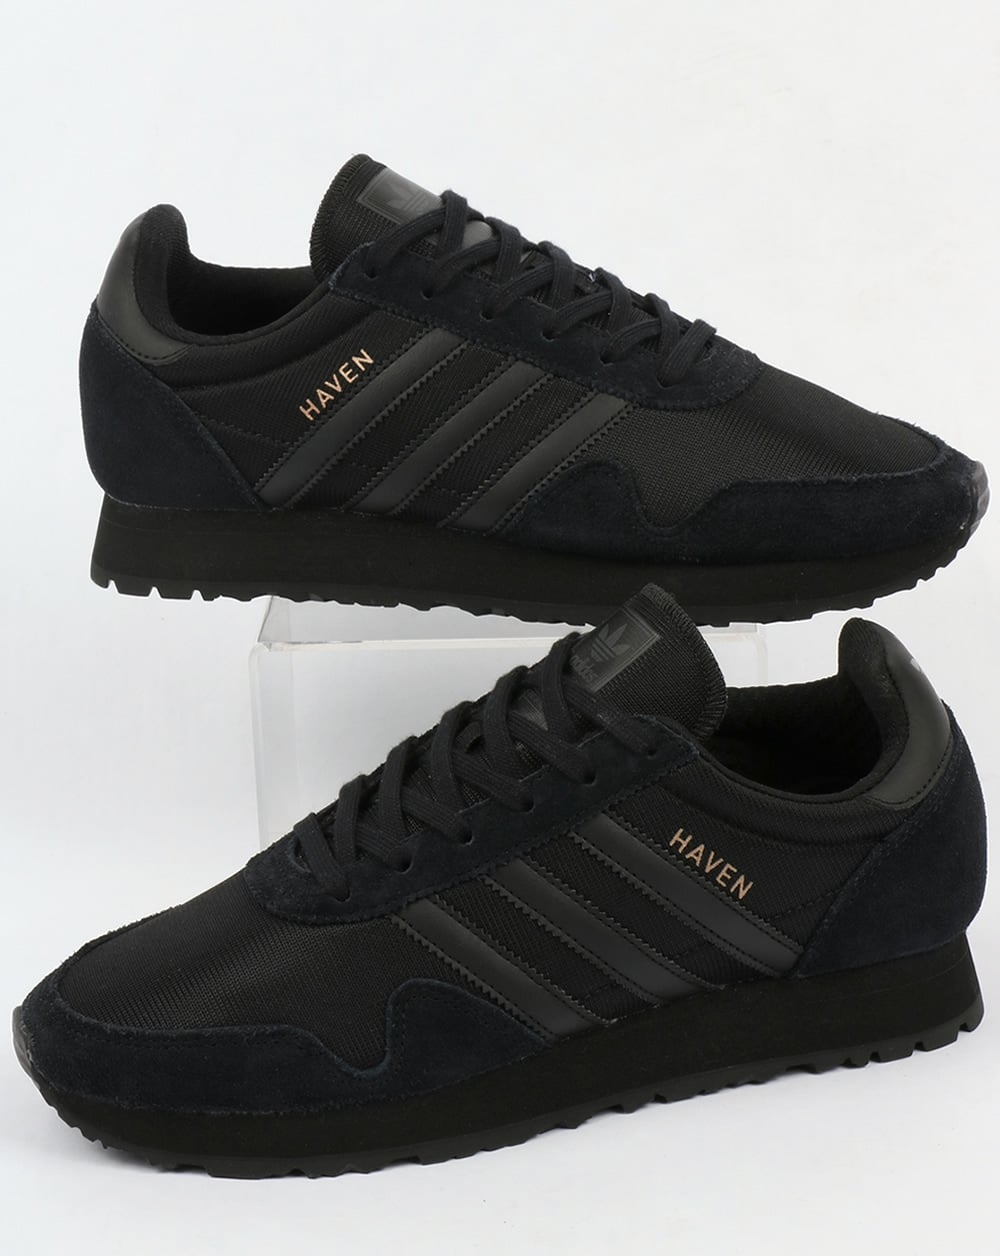 The Black Trainers come with Stealth Jump as a main ability when purchased from shop or ordered from Murch, which, being exclusive to the main slot of Shoes, prevents the wearer from also having Drop Roller or Object Shredder.